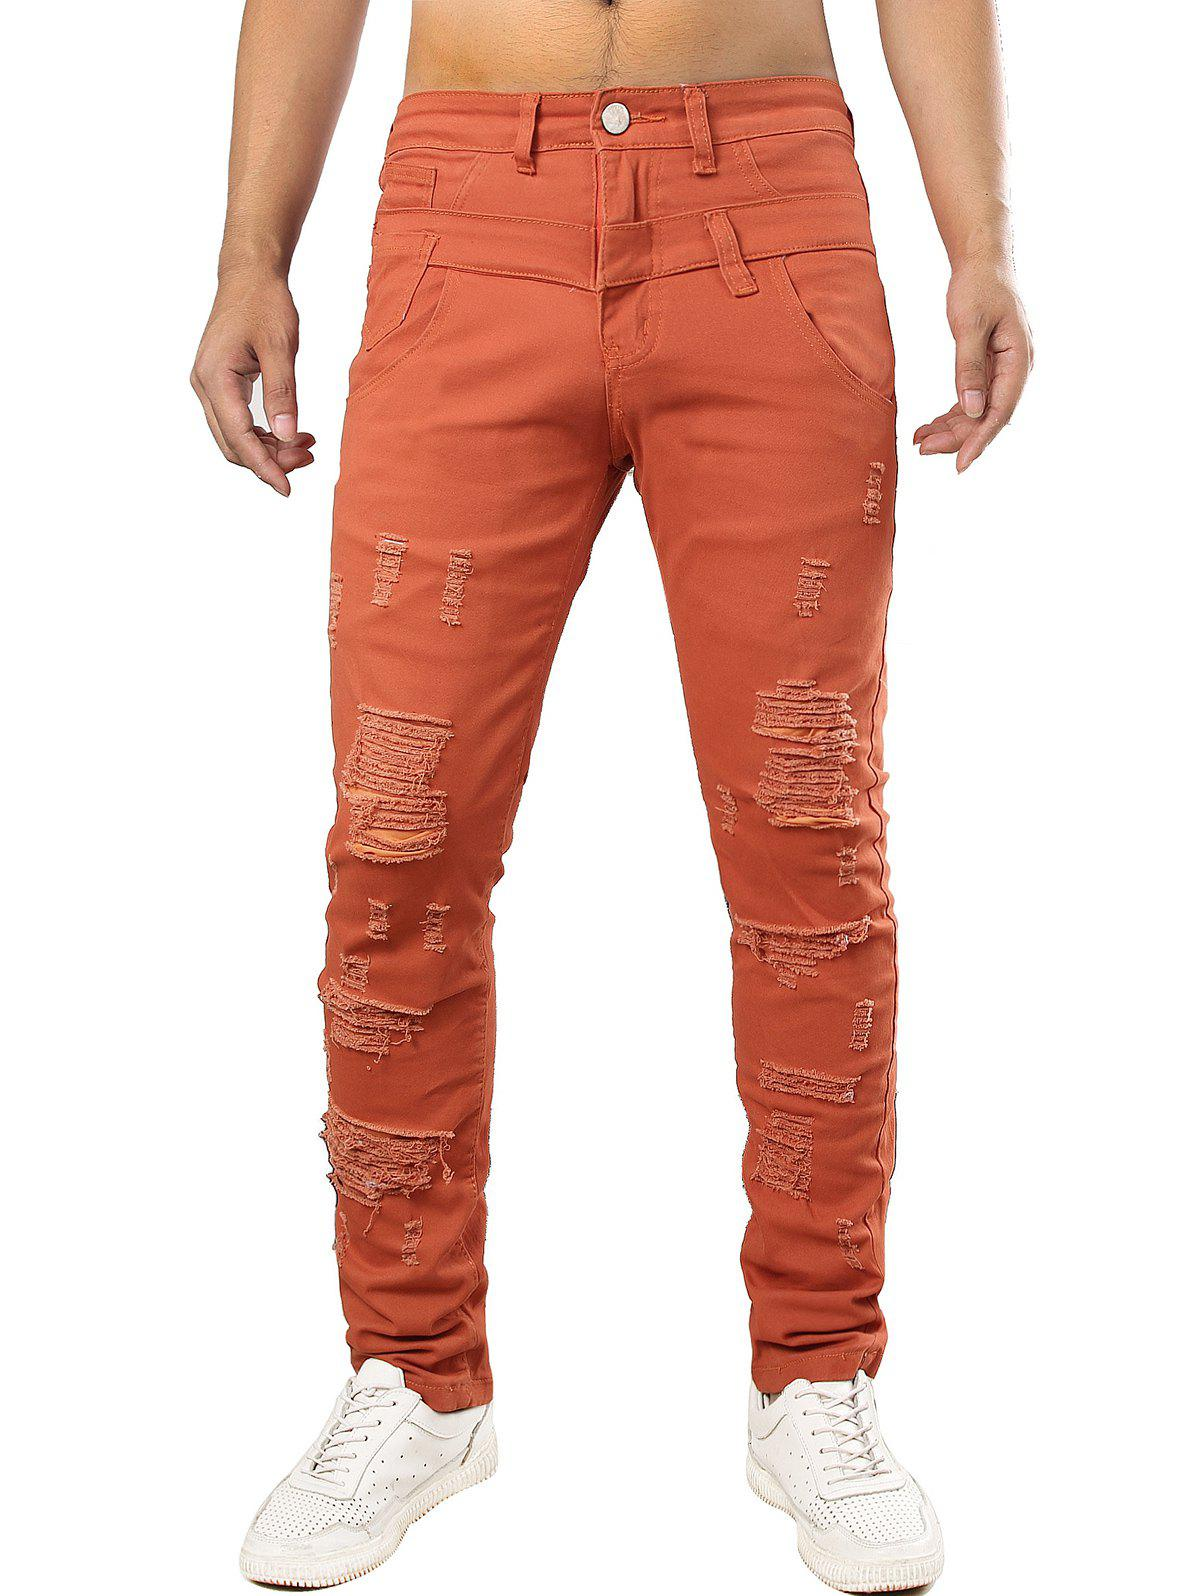 Zip Fly Design Casual Ripped Jeans - ORANGE 42